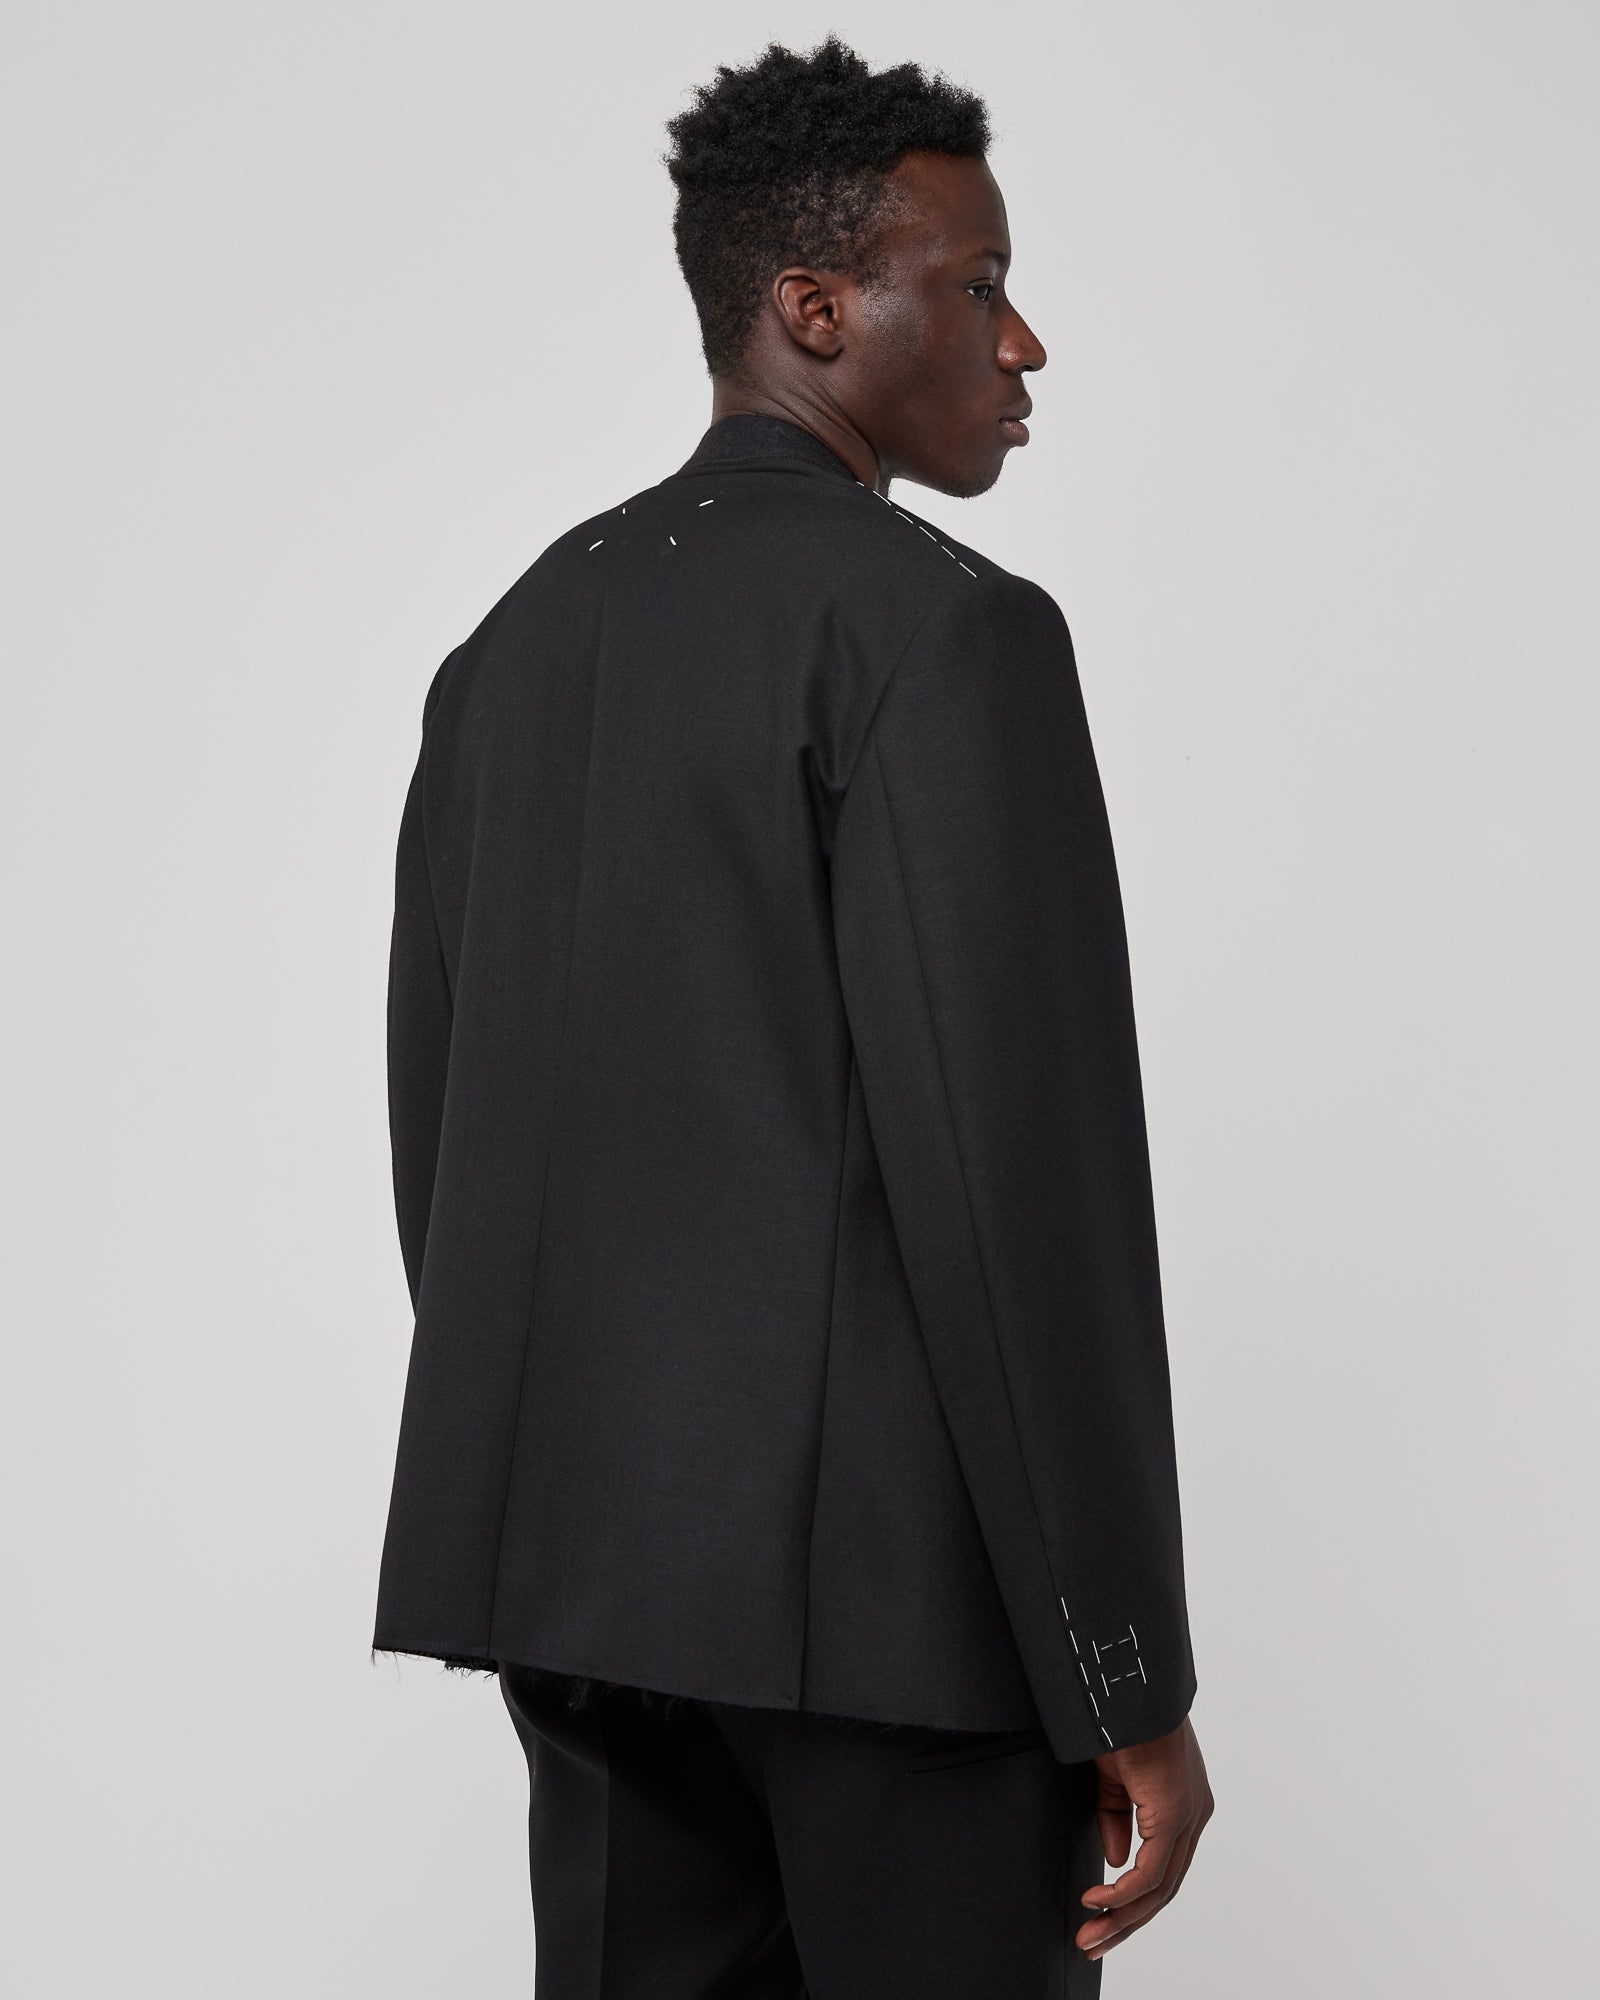 Collarless Suit Jacket in Black